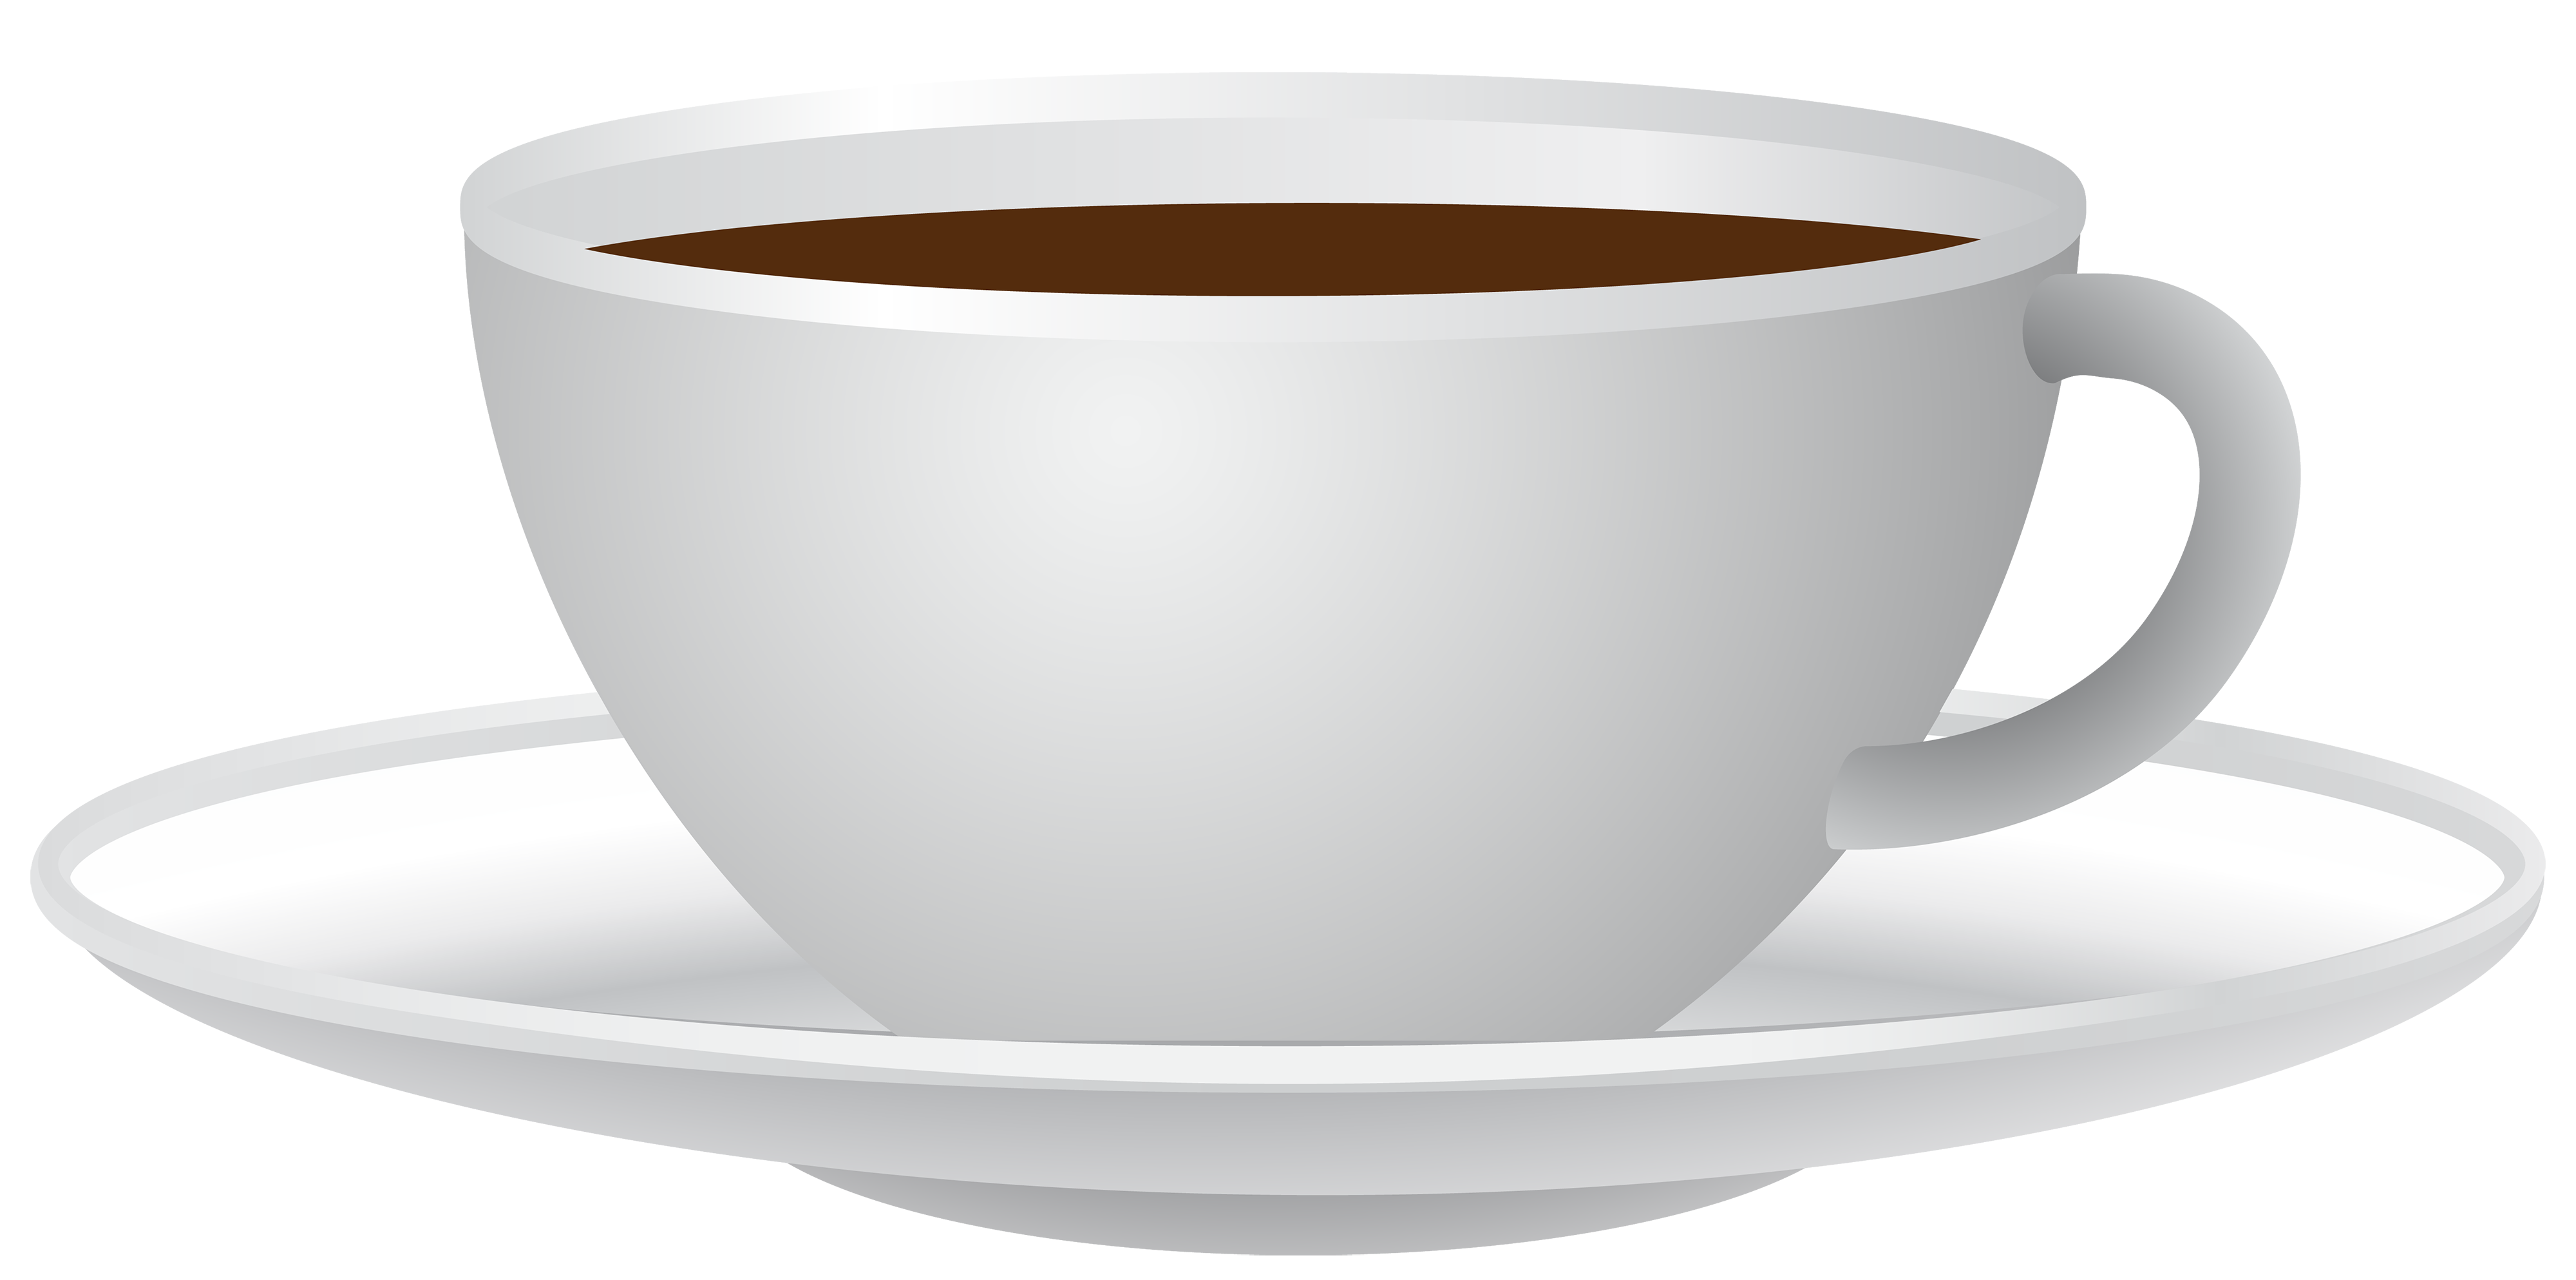 Coffee png clipart best. Cup transparent background image transparent library